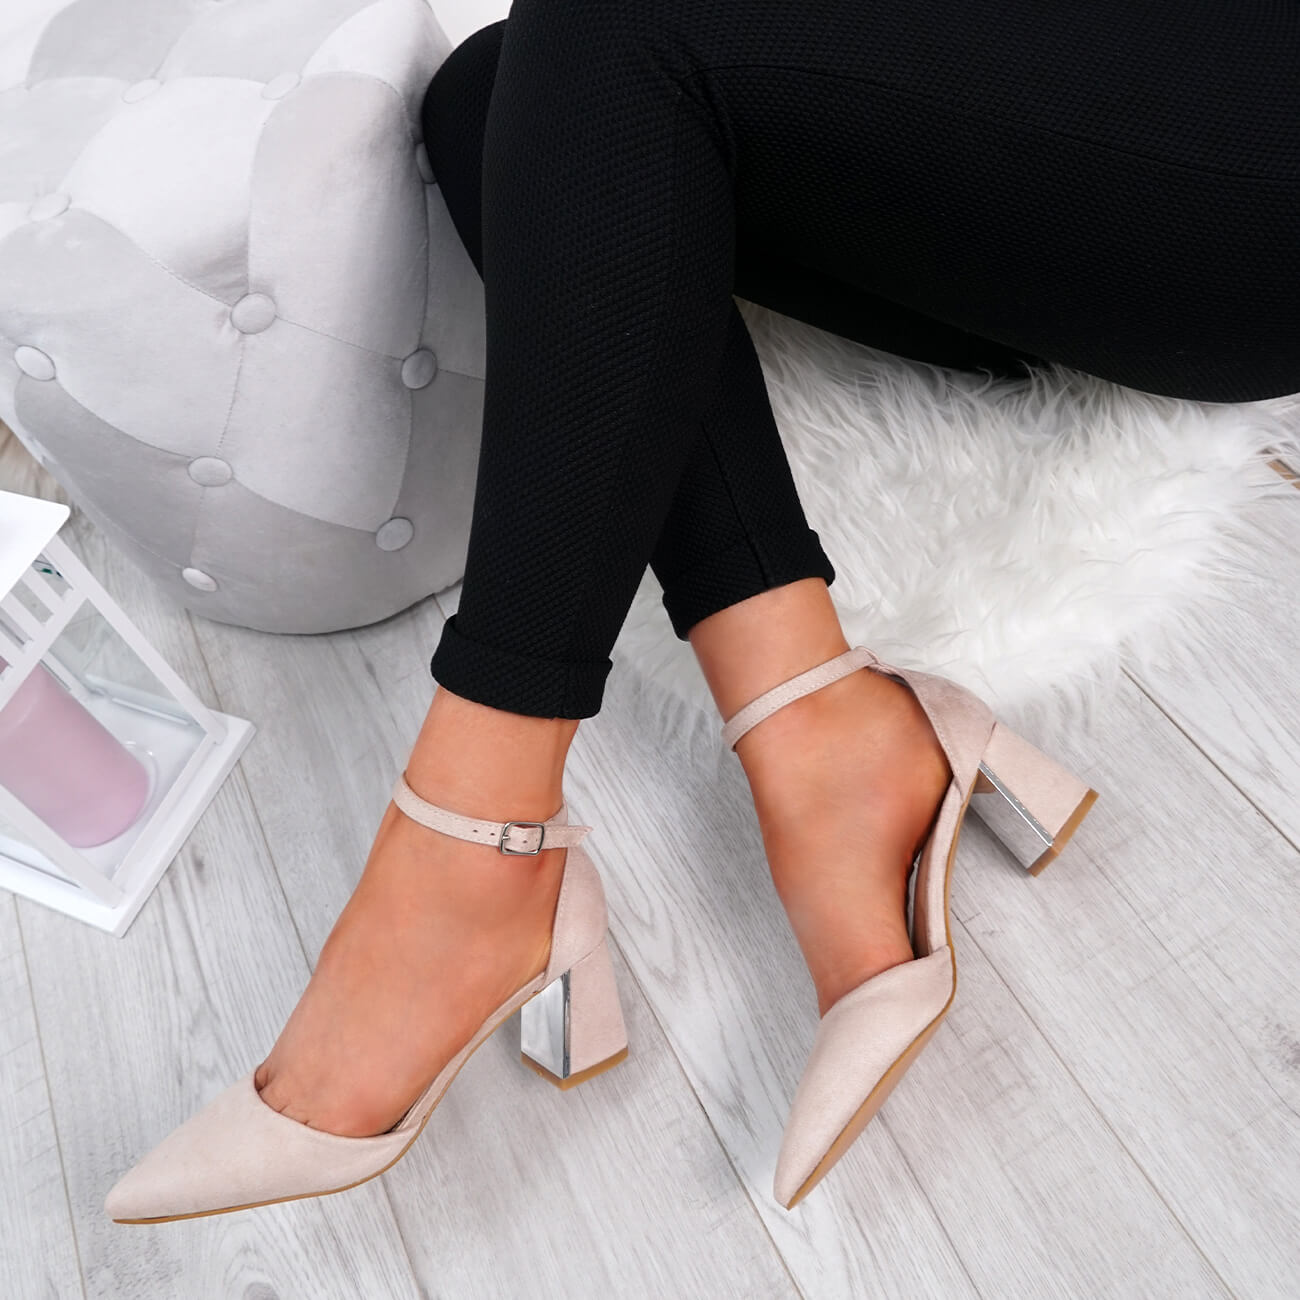 WOMENS-LADIES-ANKLE-STRAP-POINTED-HIGH-BLOCK-HEEL-PUMPS-COURT-SHOES-SIZE thumbnail 14